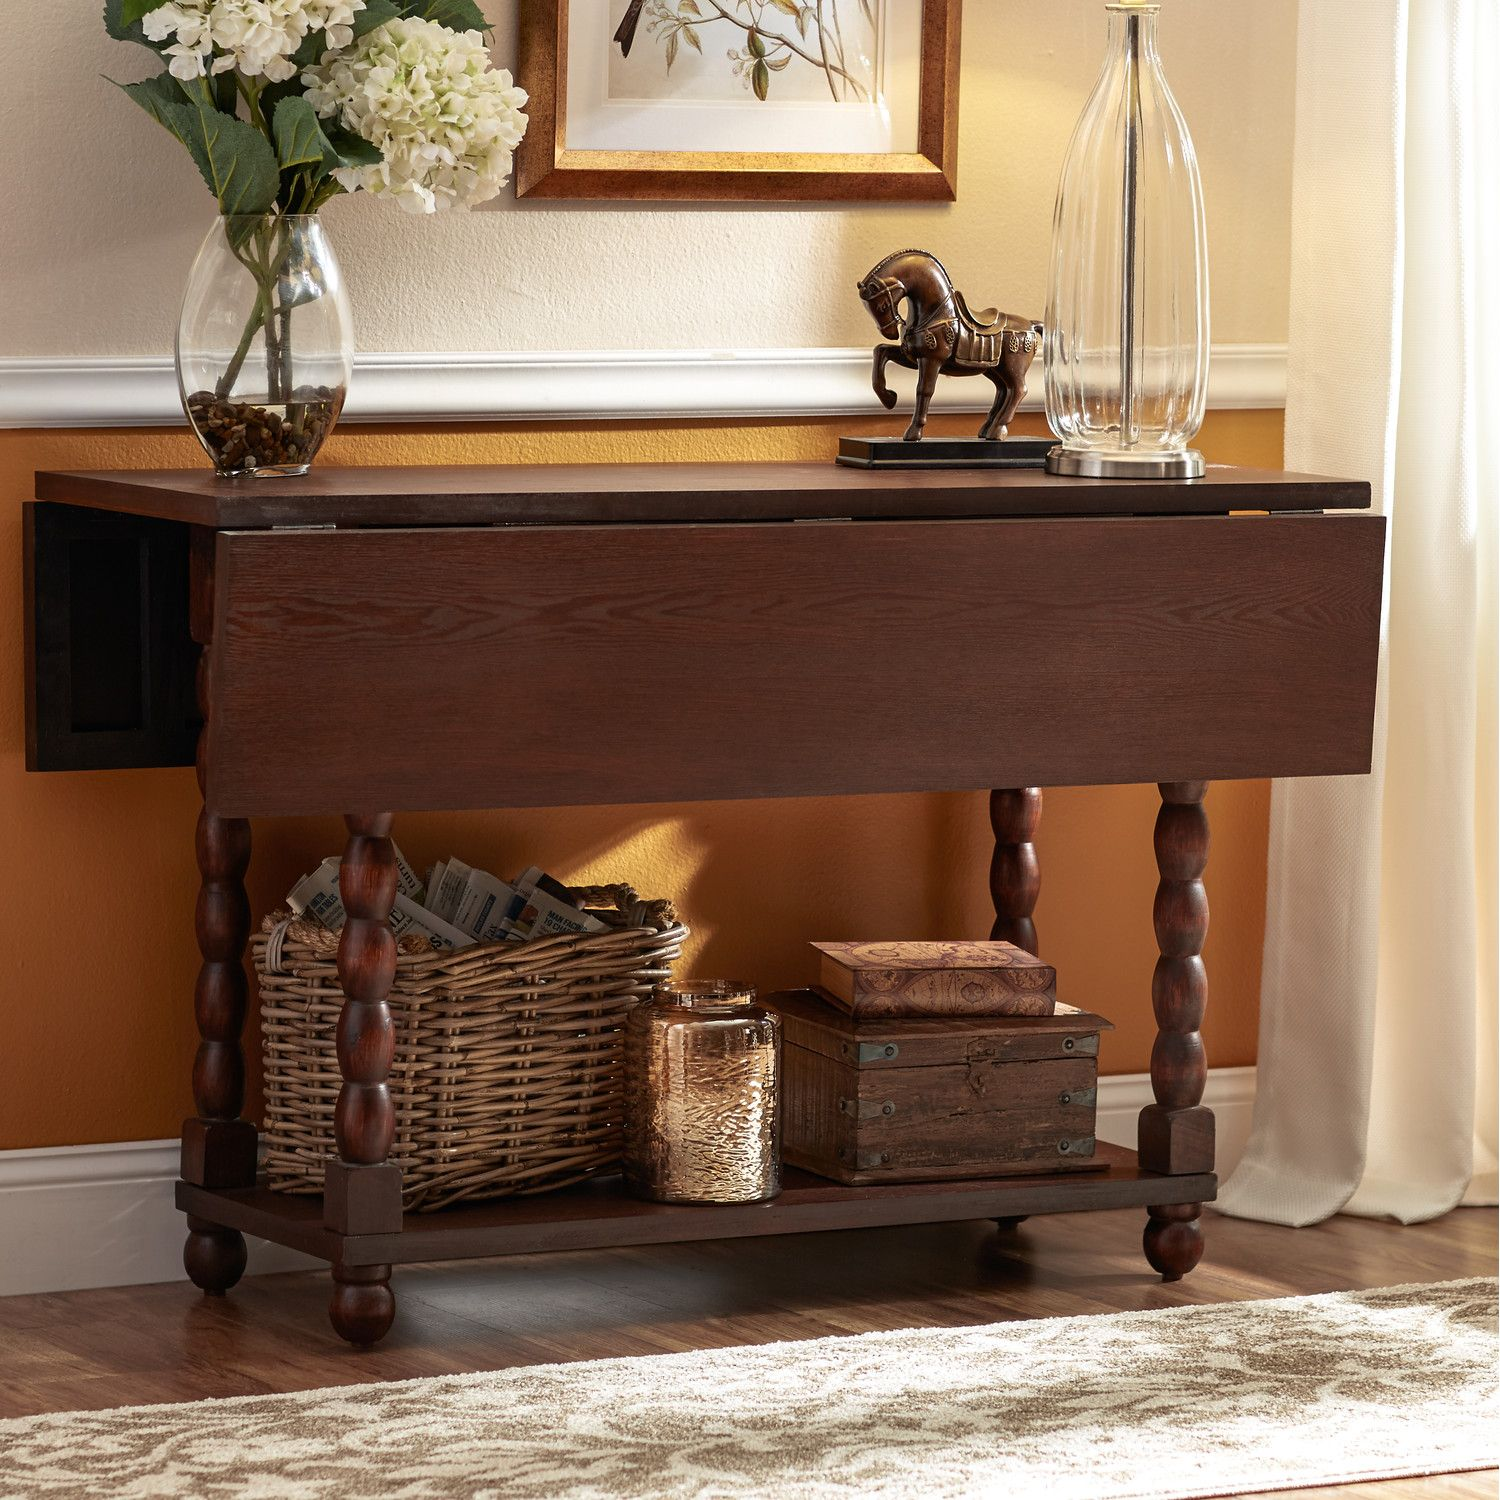 30H X 48W X 18D (with leaves up, the top is 36 x 48) $183  Three Posts Console Table